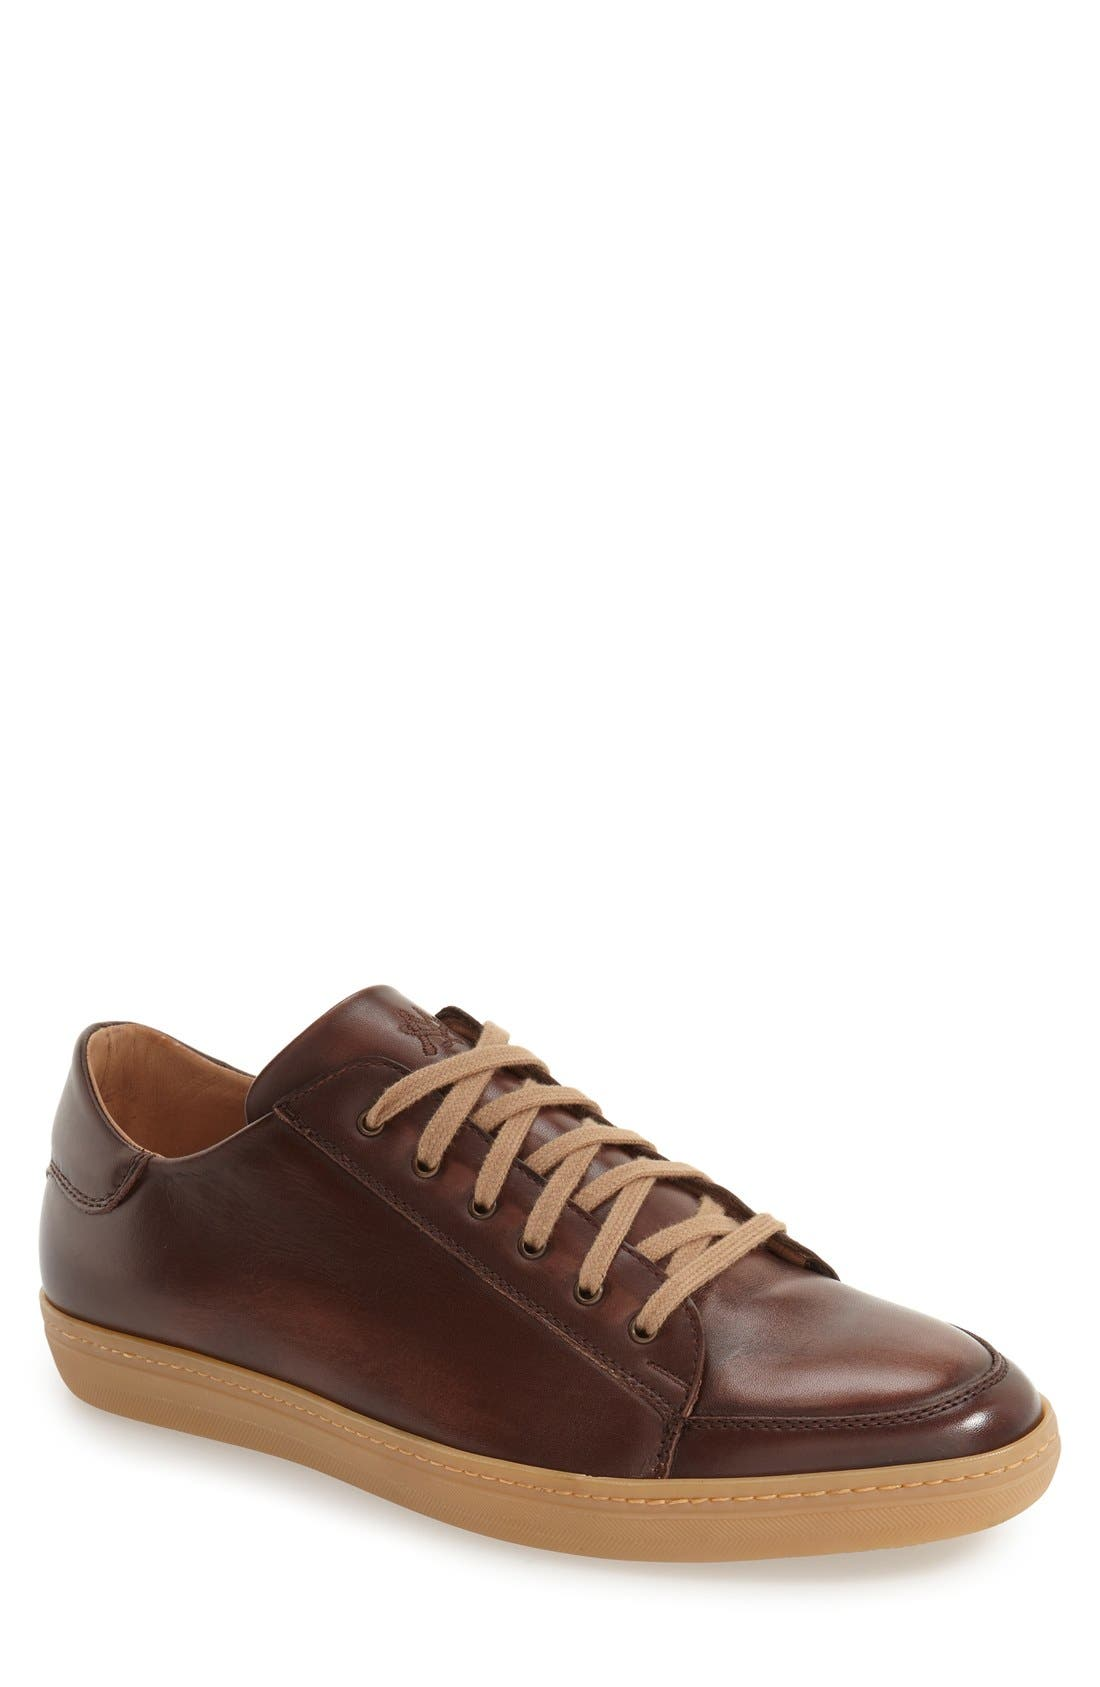 'MASI' LACE-UP SNEAKER